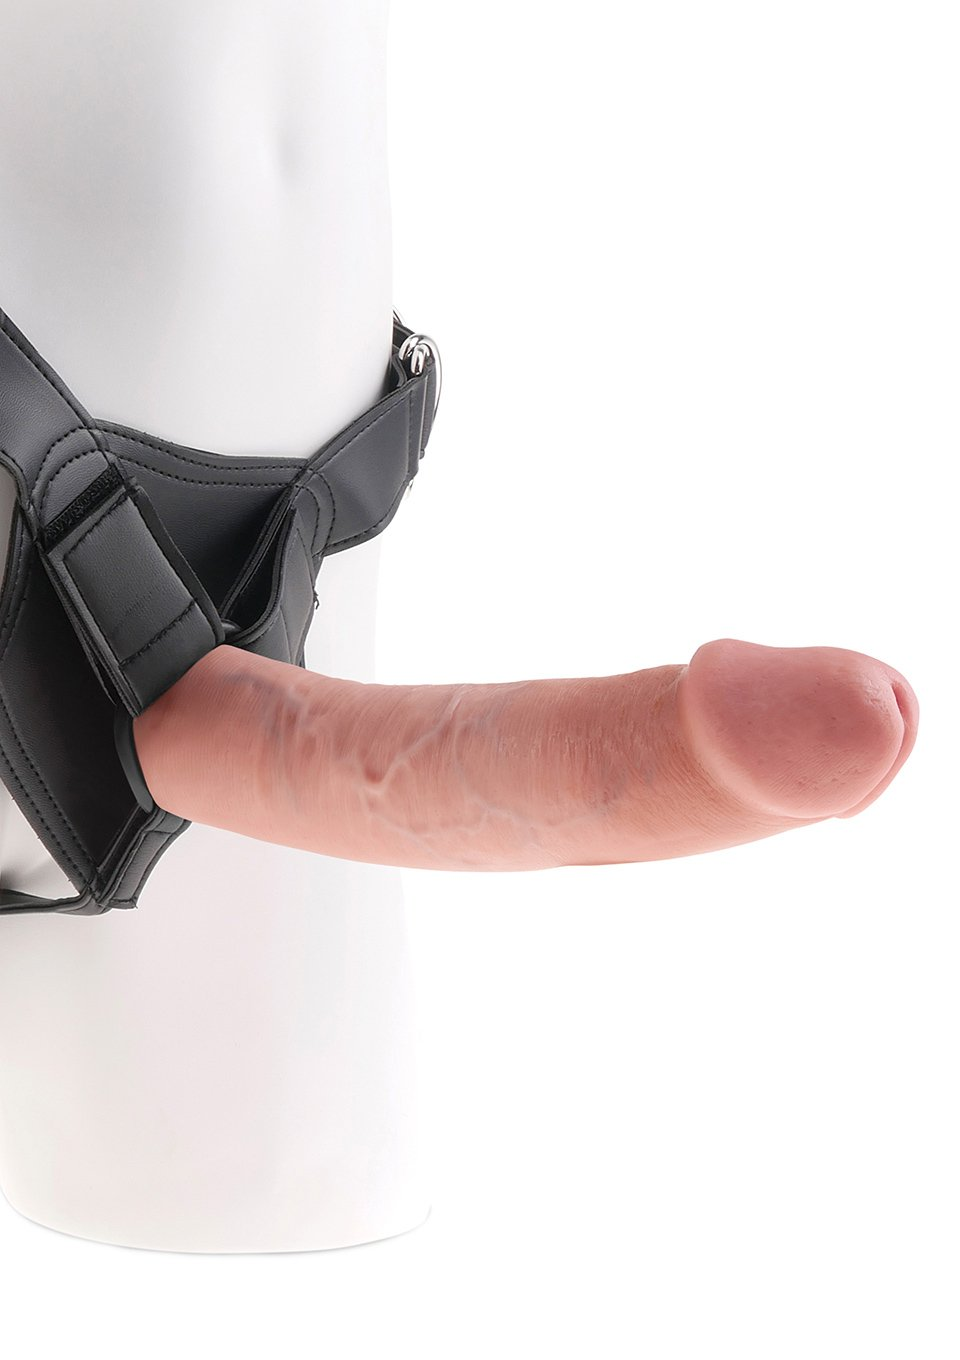 King Cock Strap-on Harness with 9-Inch Cock